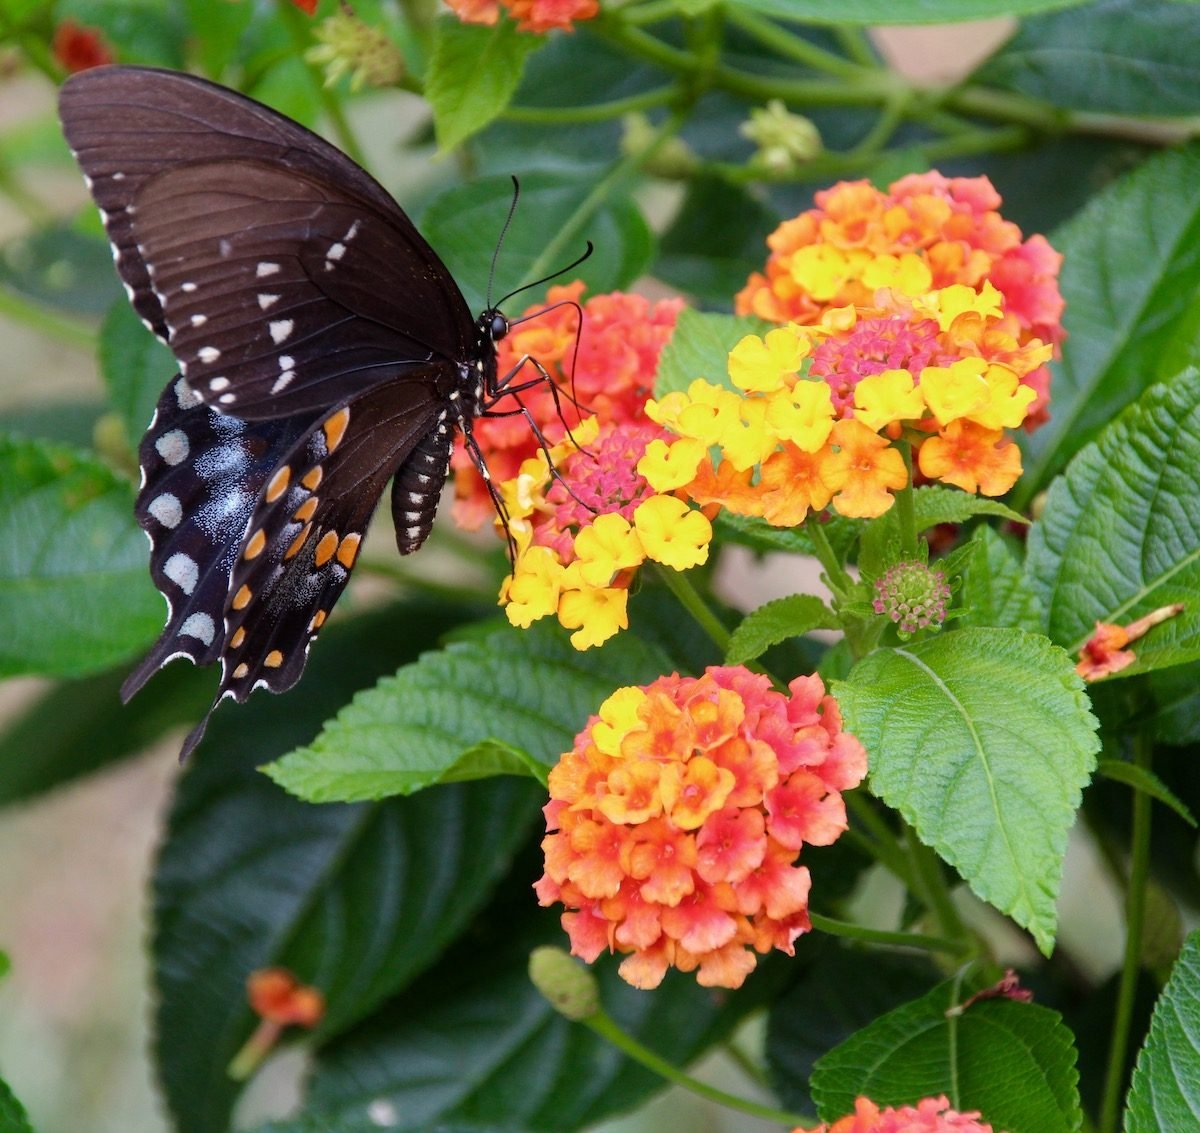 Late-Blooming Fall Flowers That Attract Butterflies